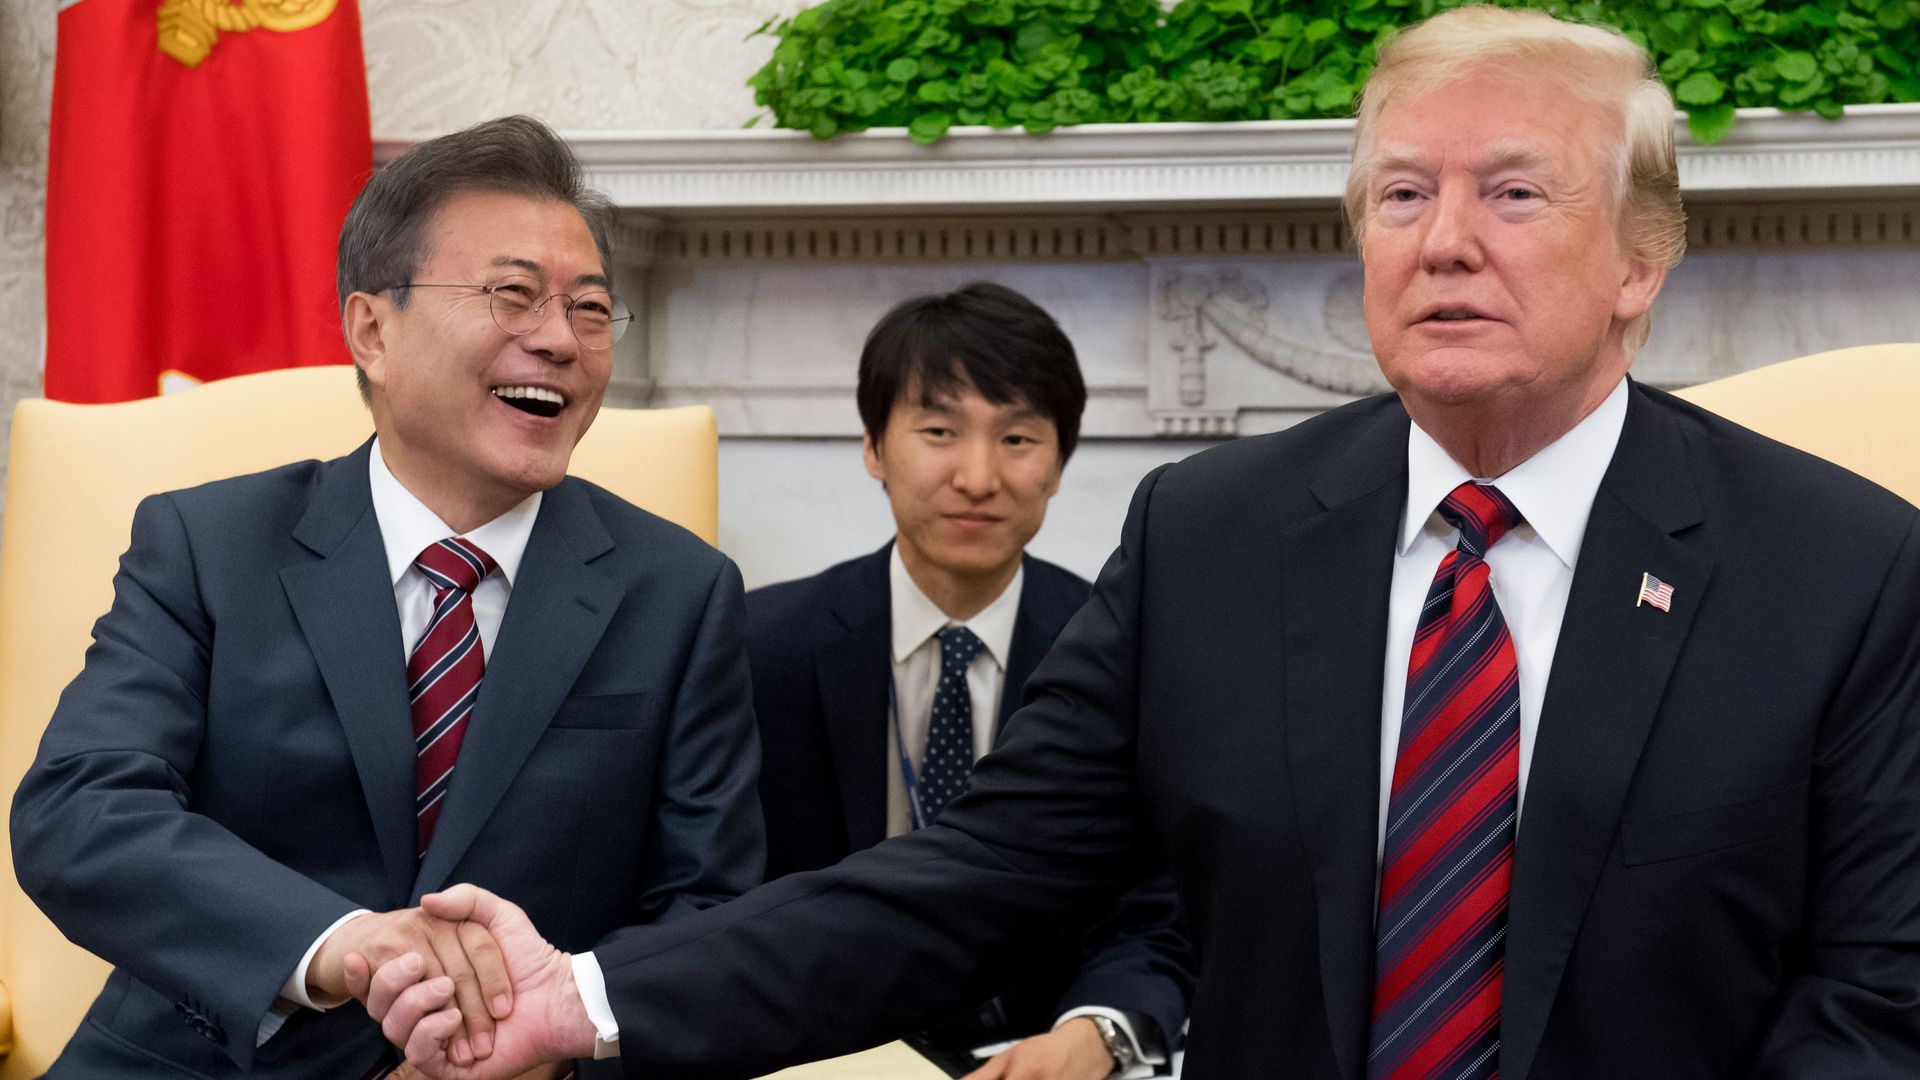 Presidents Moon Jae-in and Donald Trump shake hands at White House